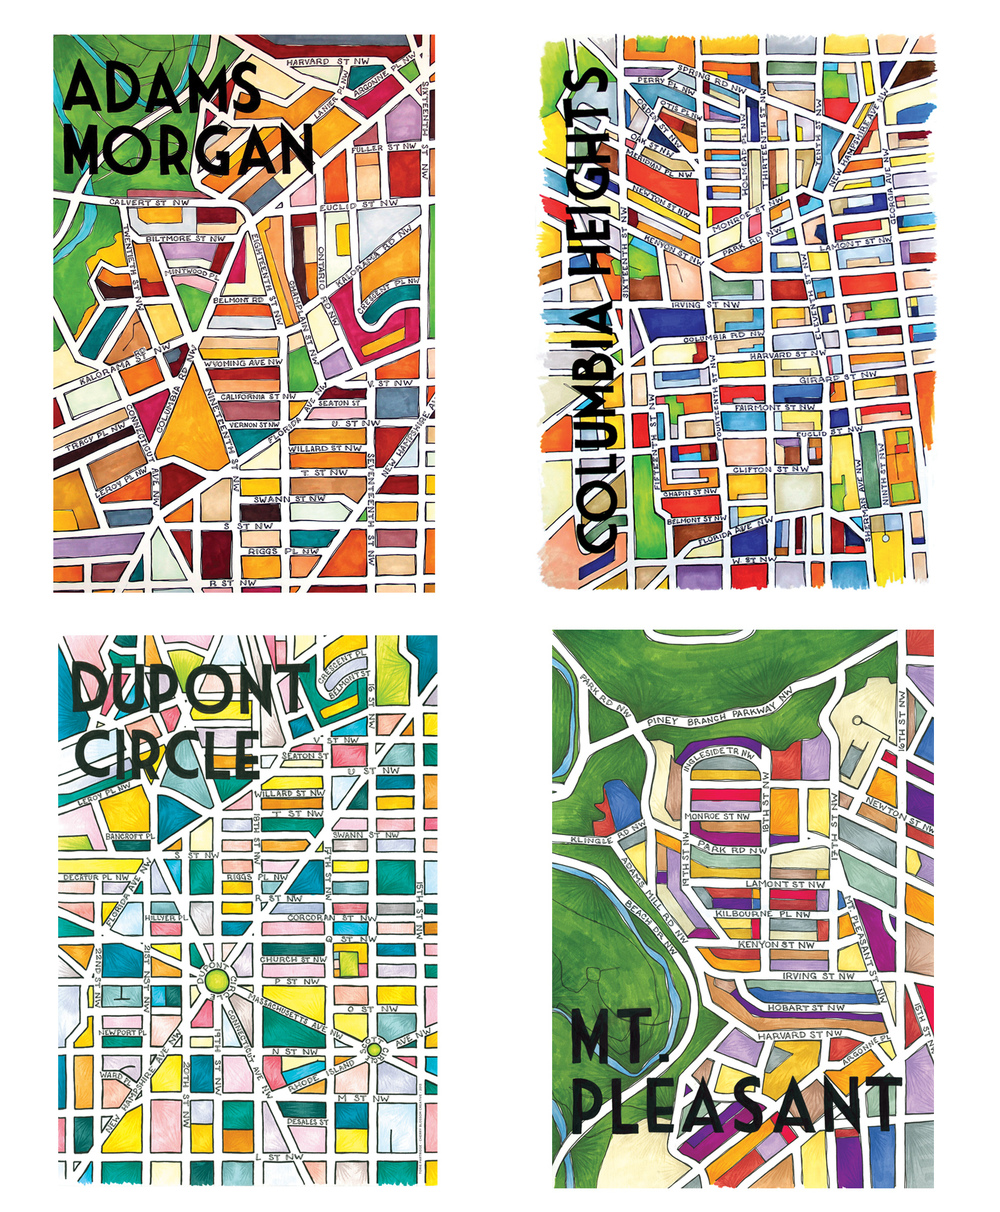 Bright city map illustrations of Adams Morgan, Columbia Heights, Dupont Circle, and Mt. Pleasant illustrated by Washington DC graphic designer Cherry Blossom Creative on Fortique